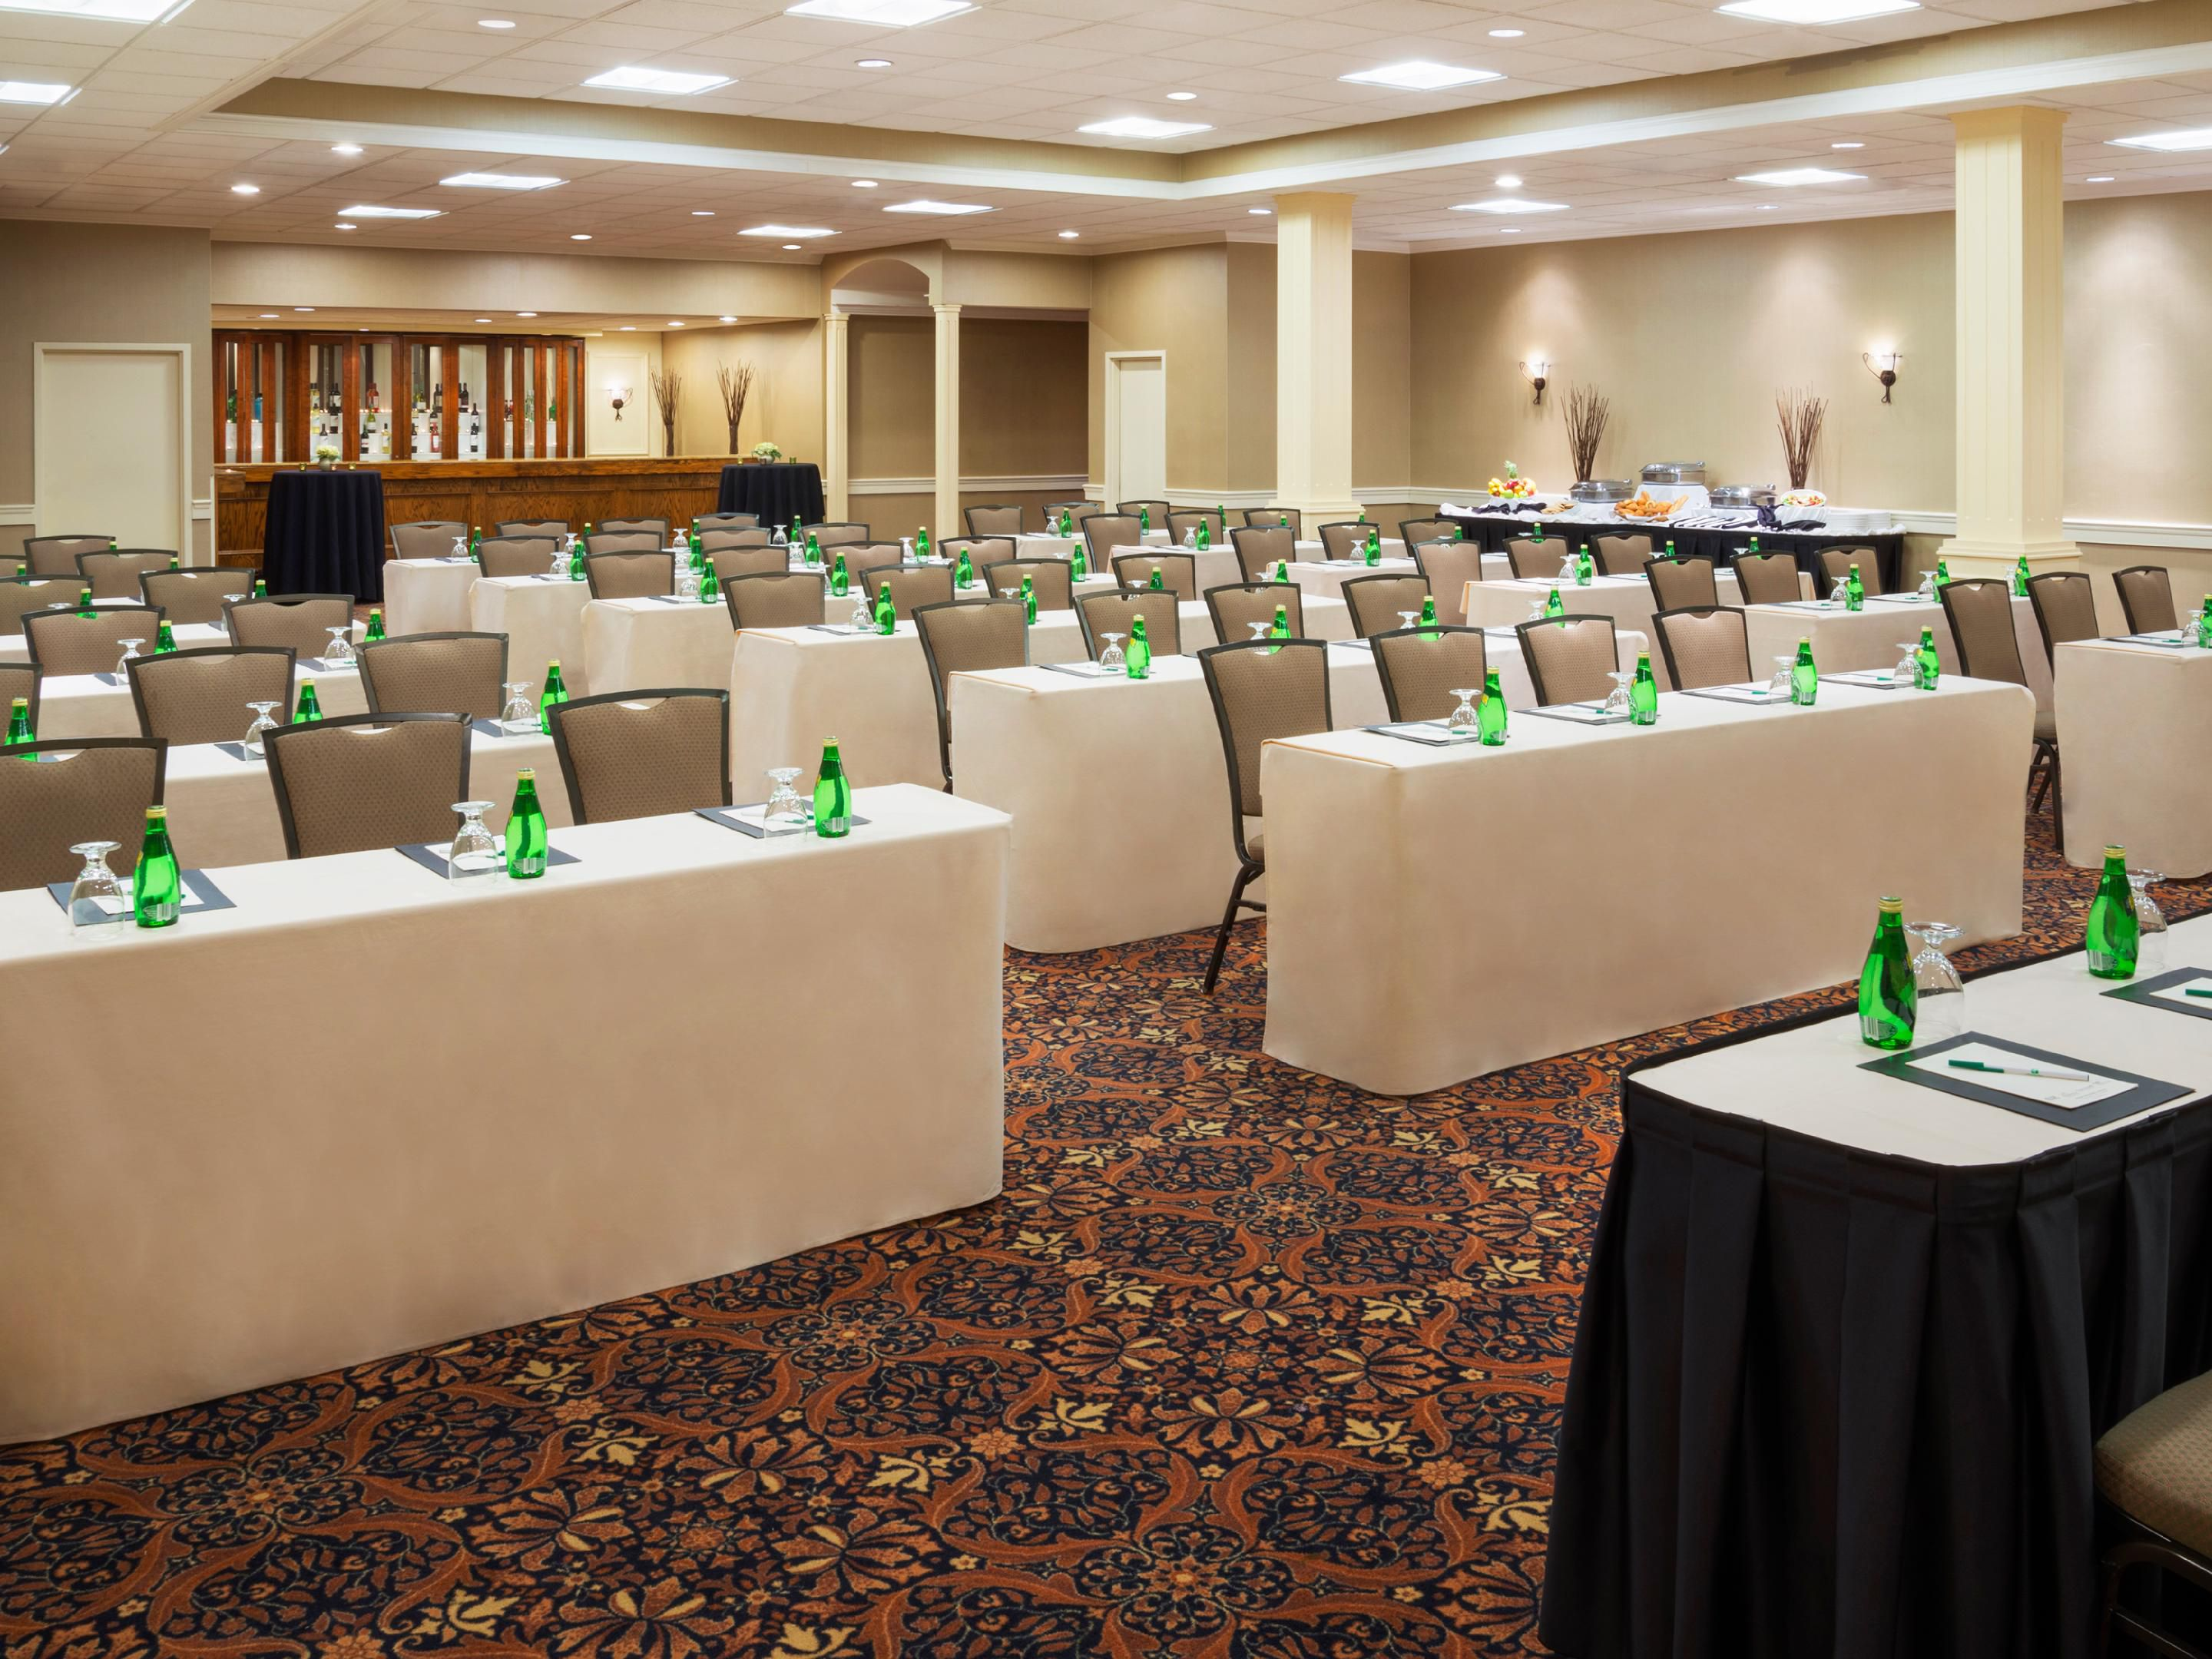 deHavilland hall for meetings and events in Toronto up to 180